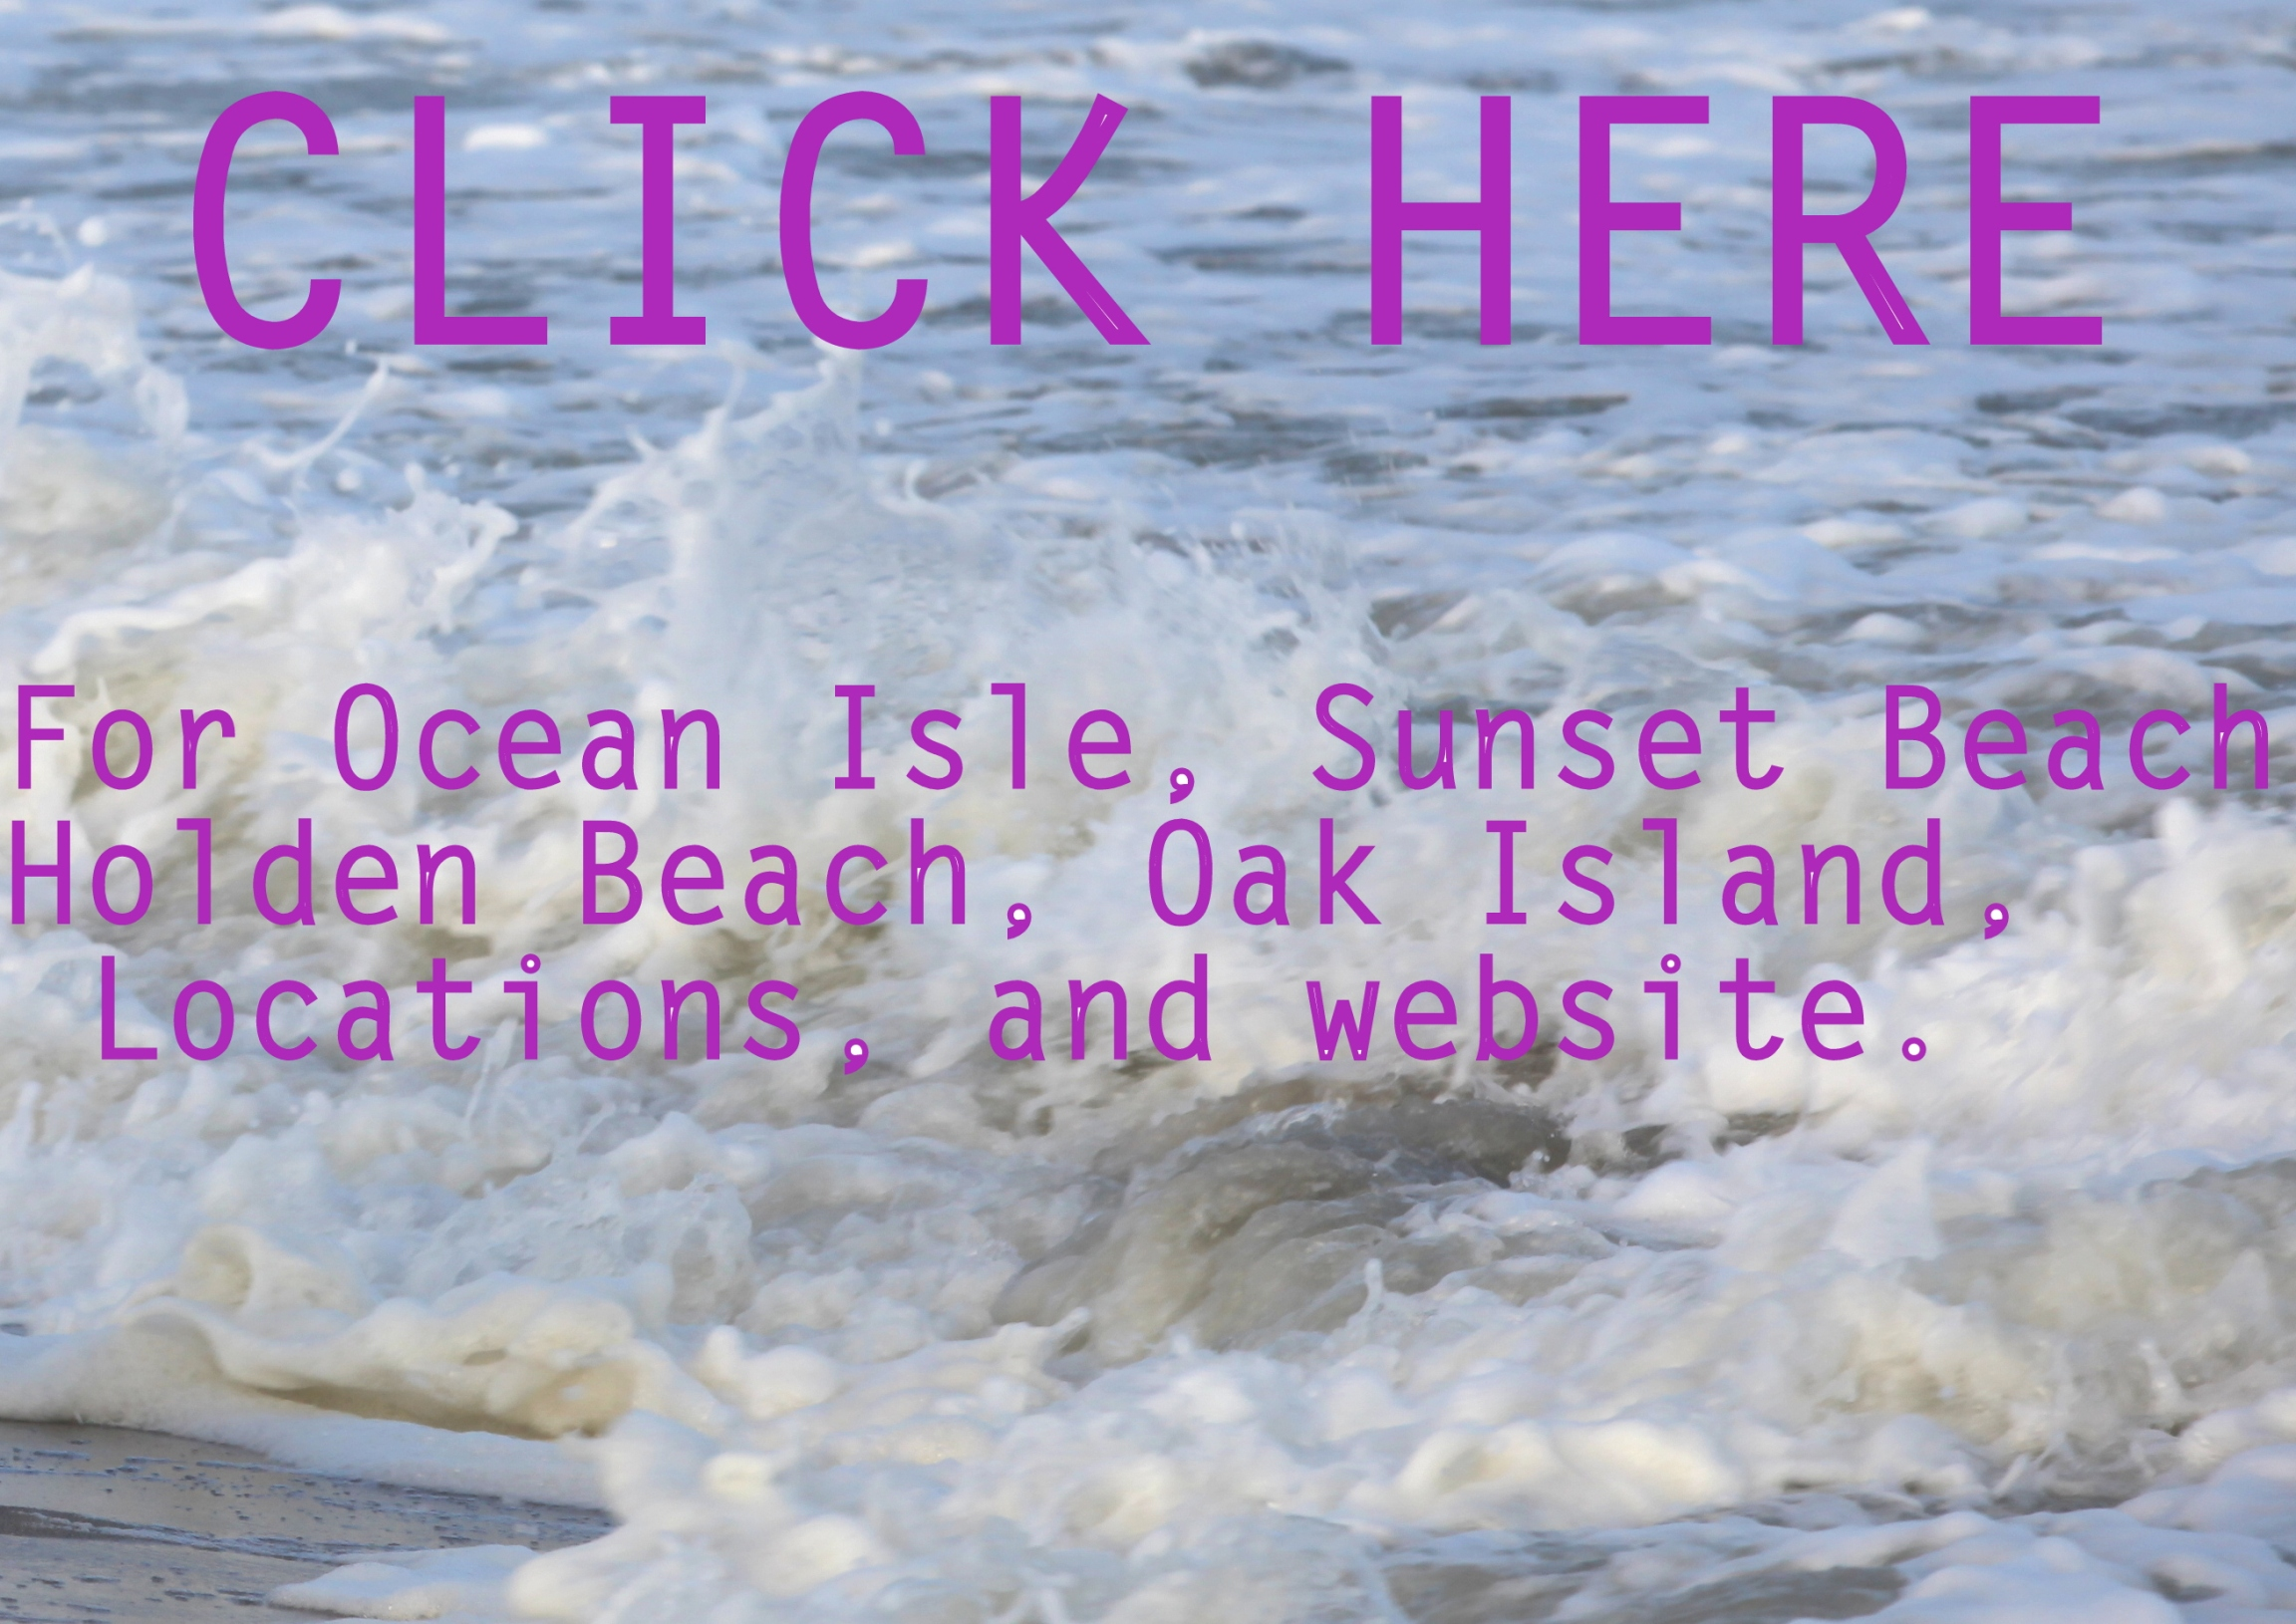 Click here for the Sunset Beach Ocean Isle location